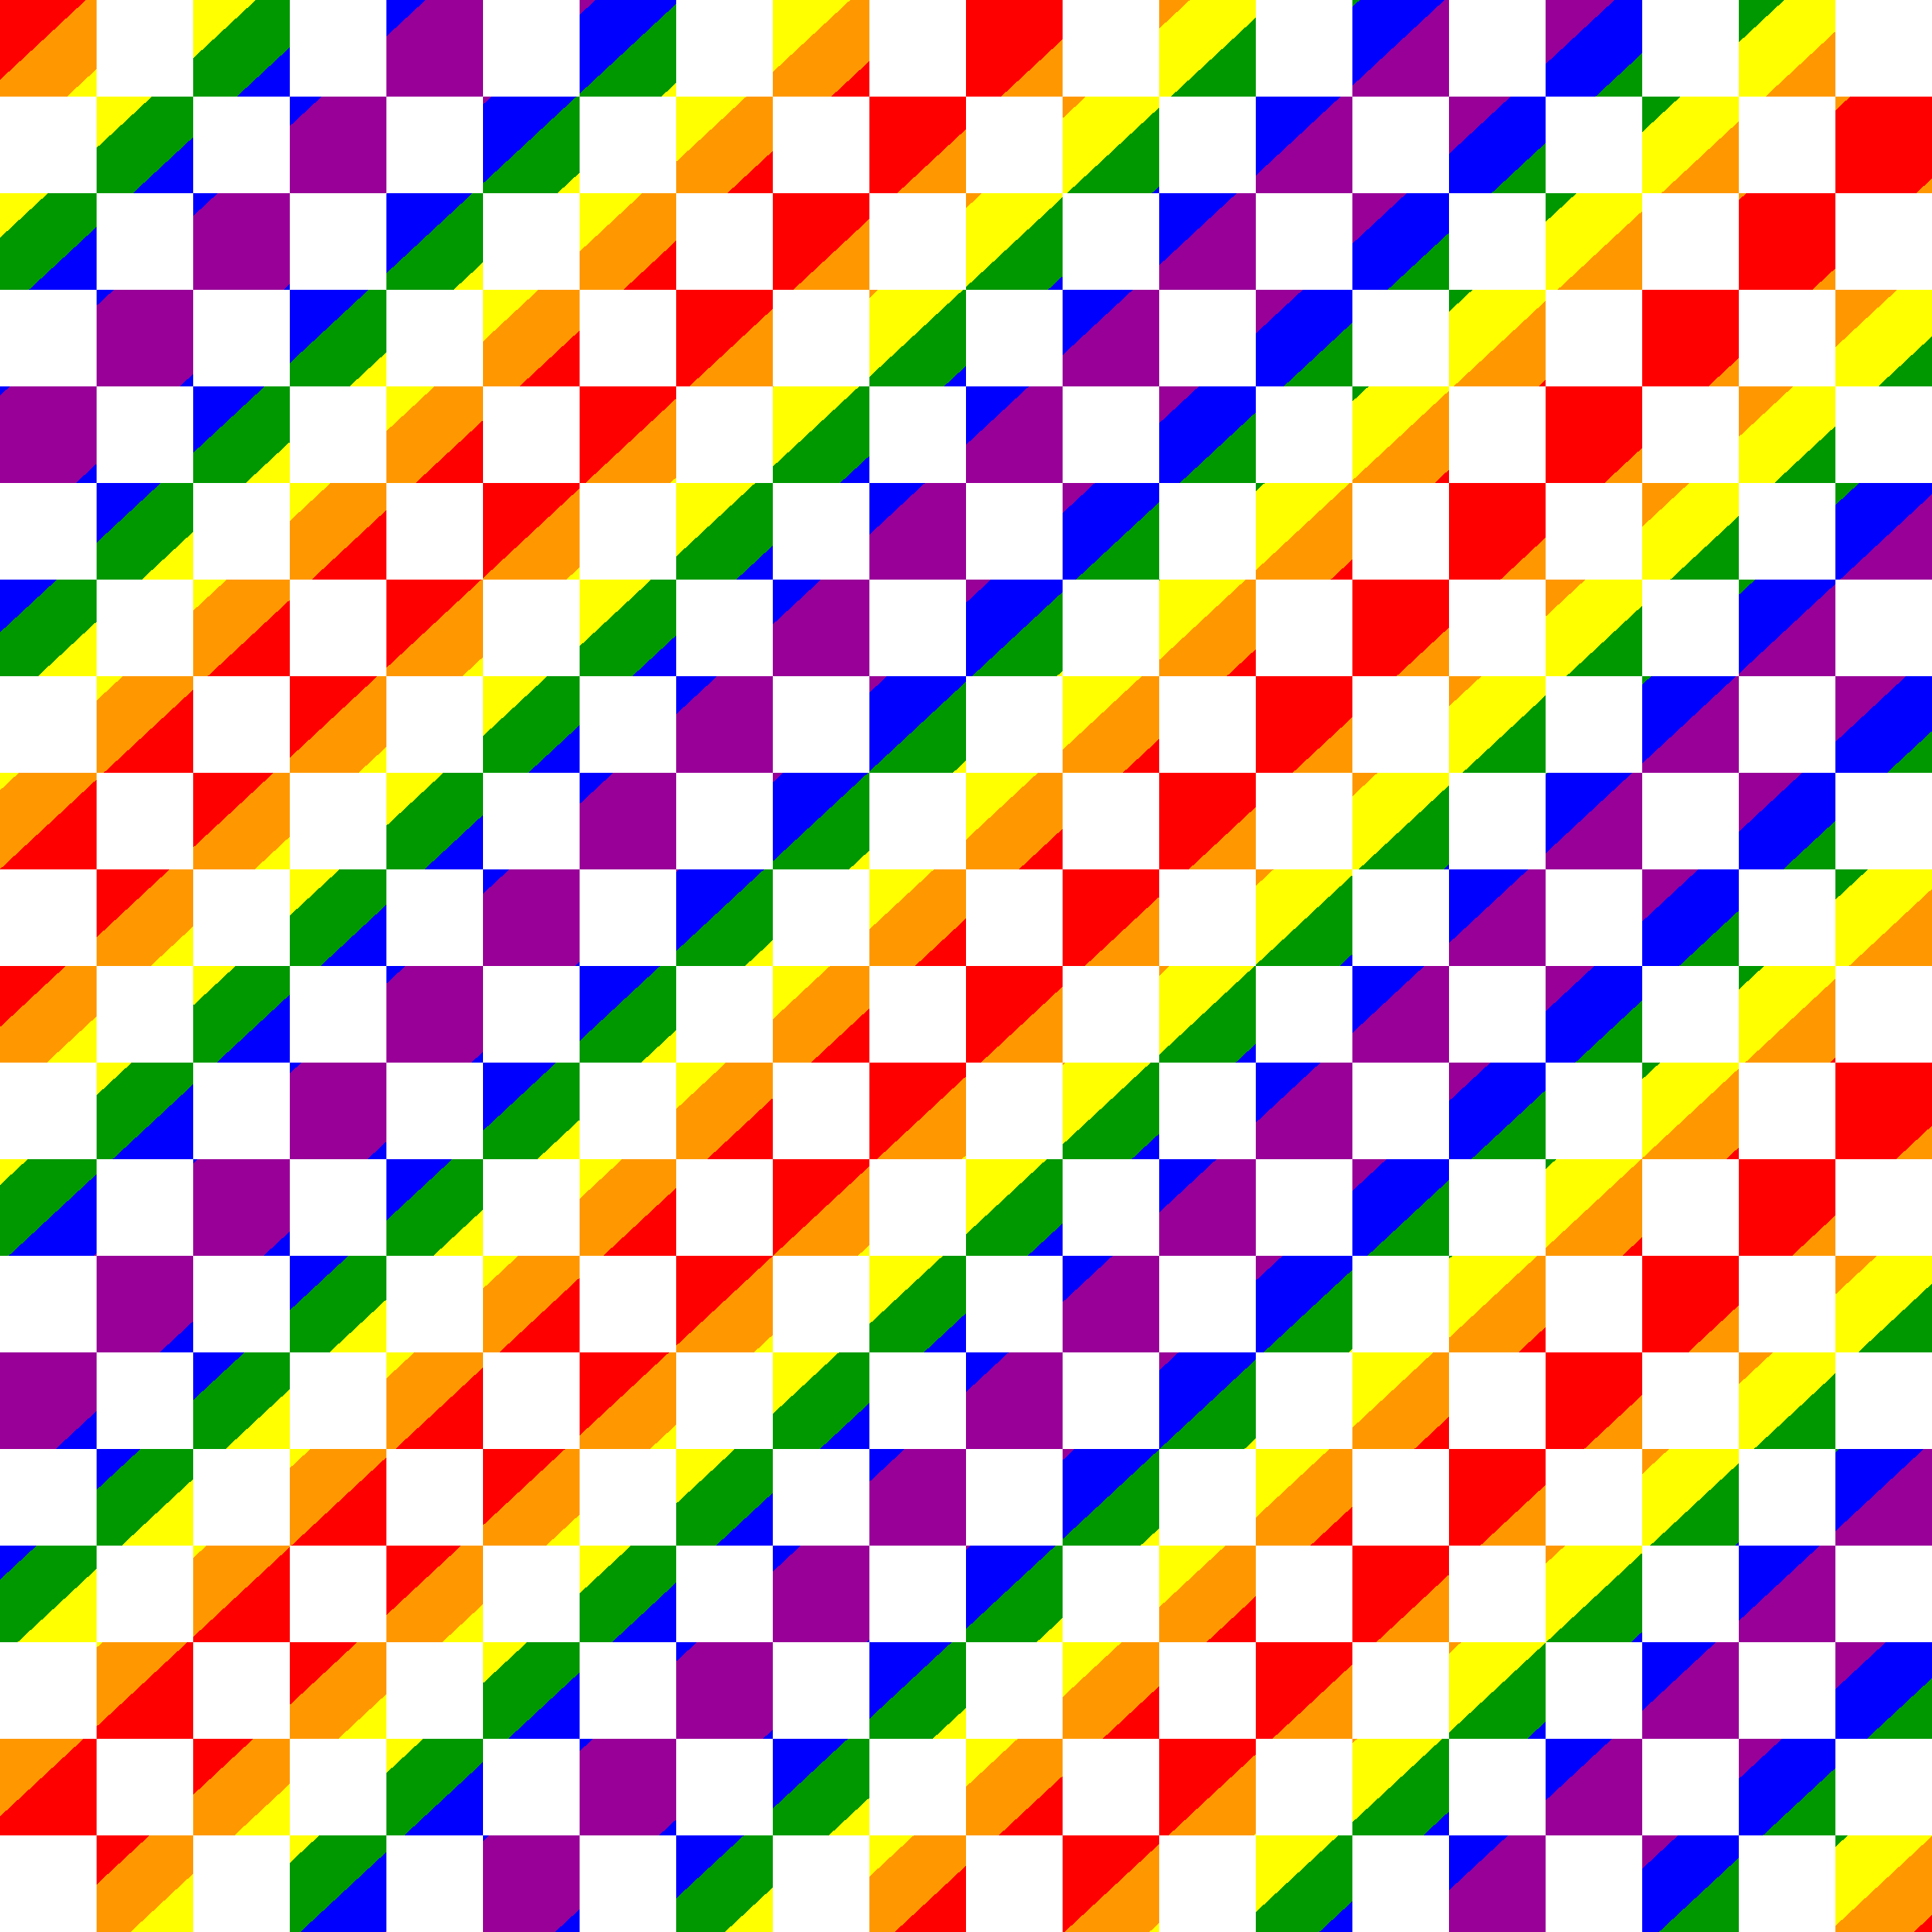 Square pattern with rainbow gradient by Manuela.